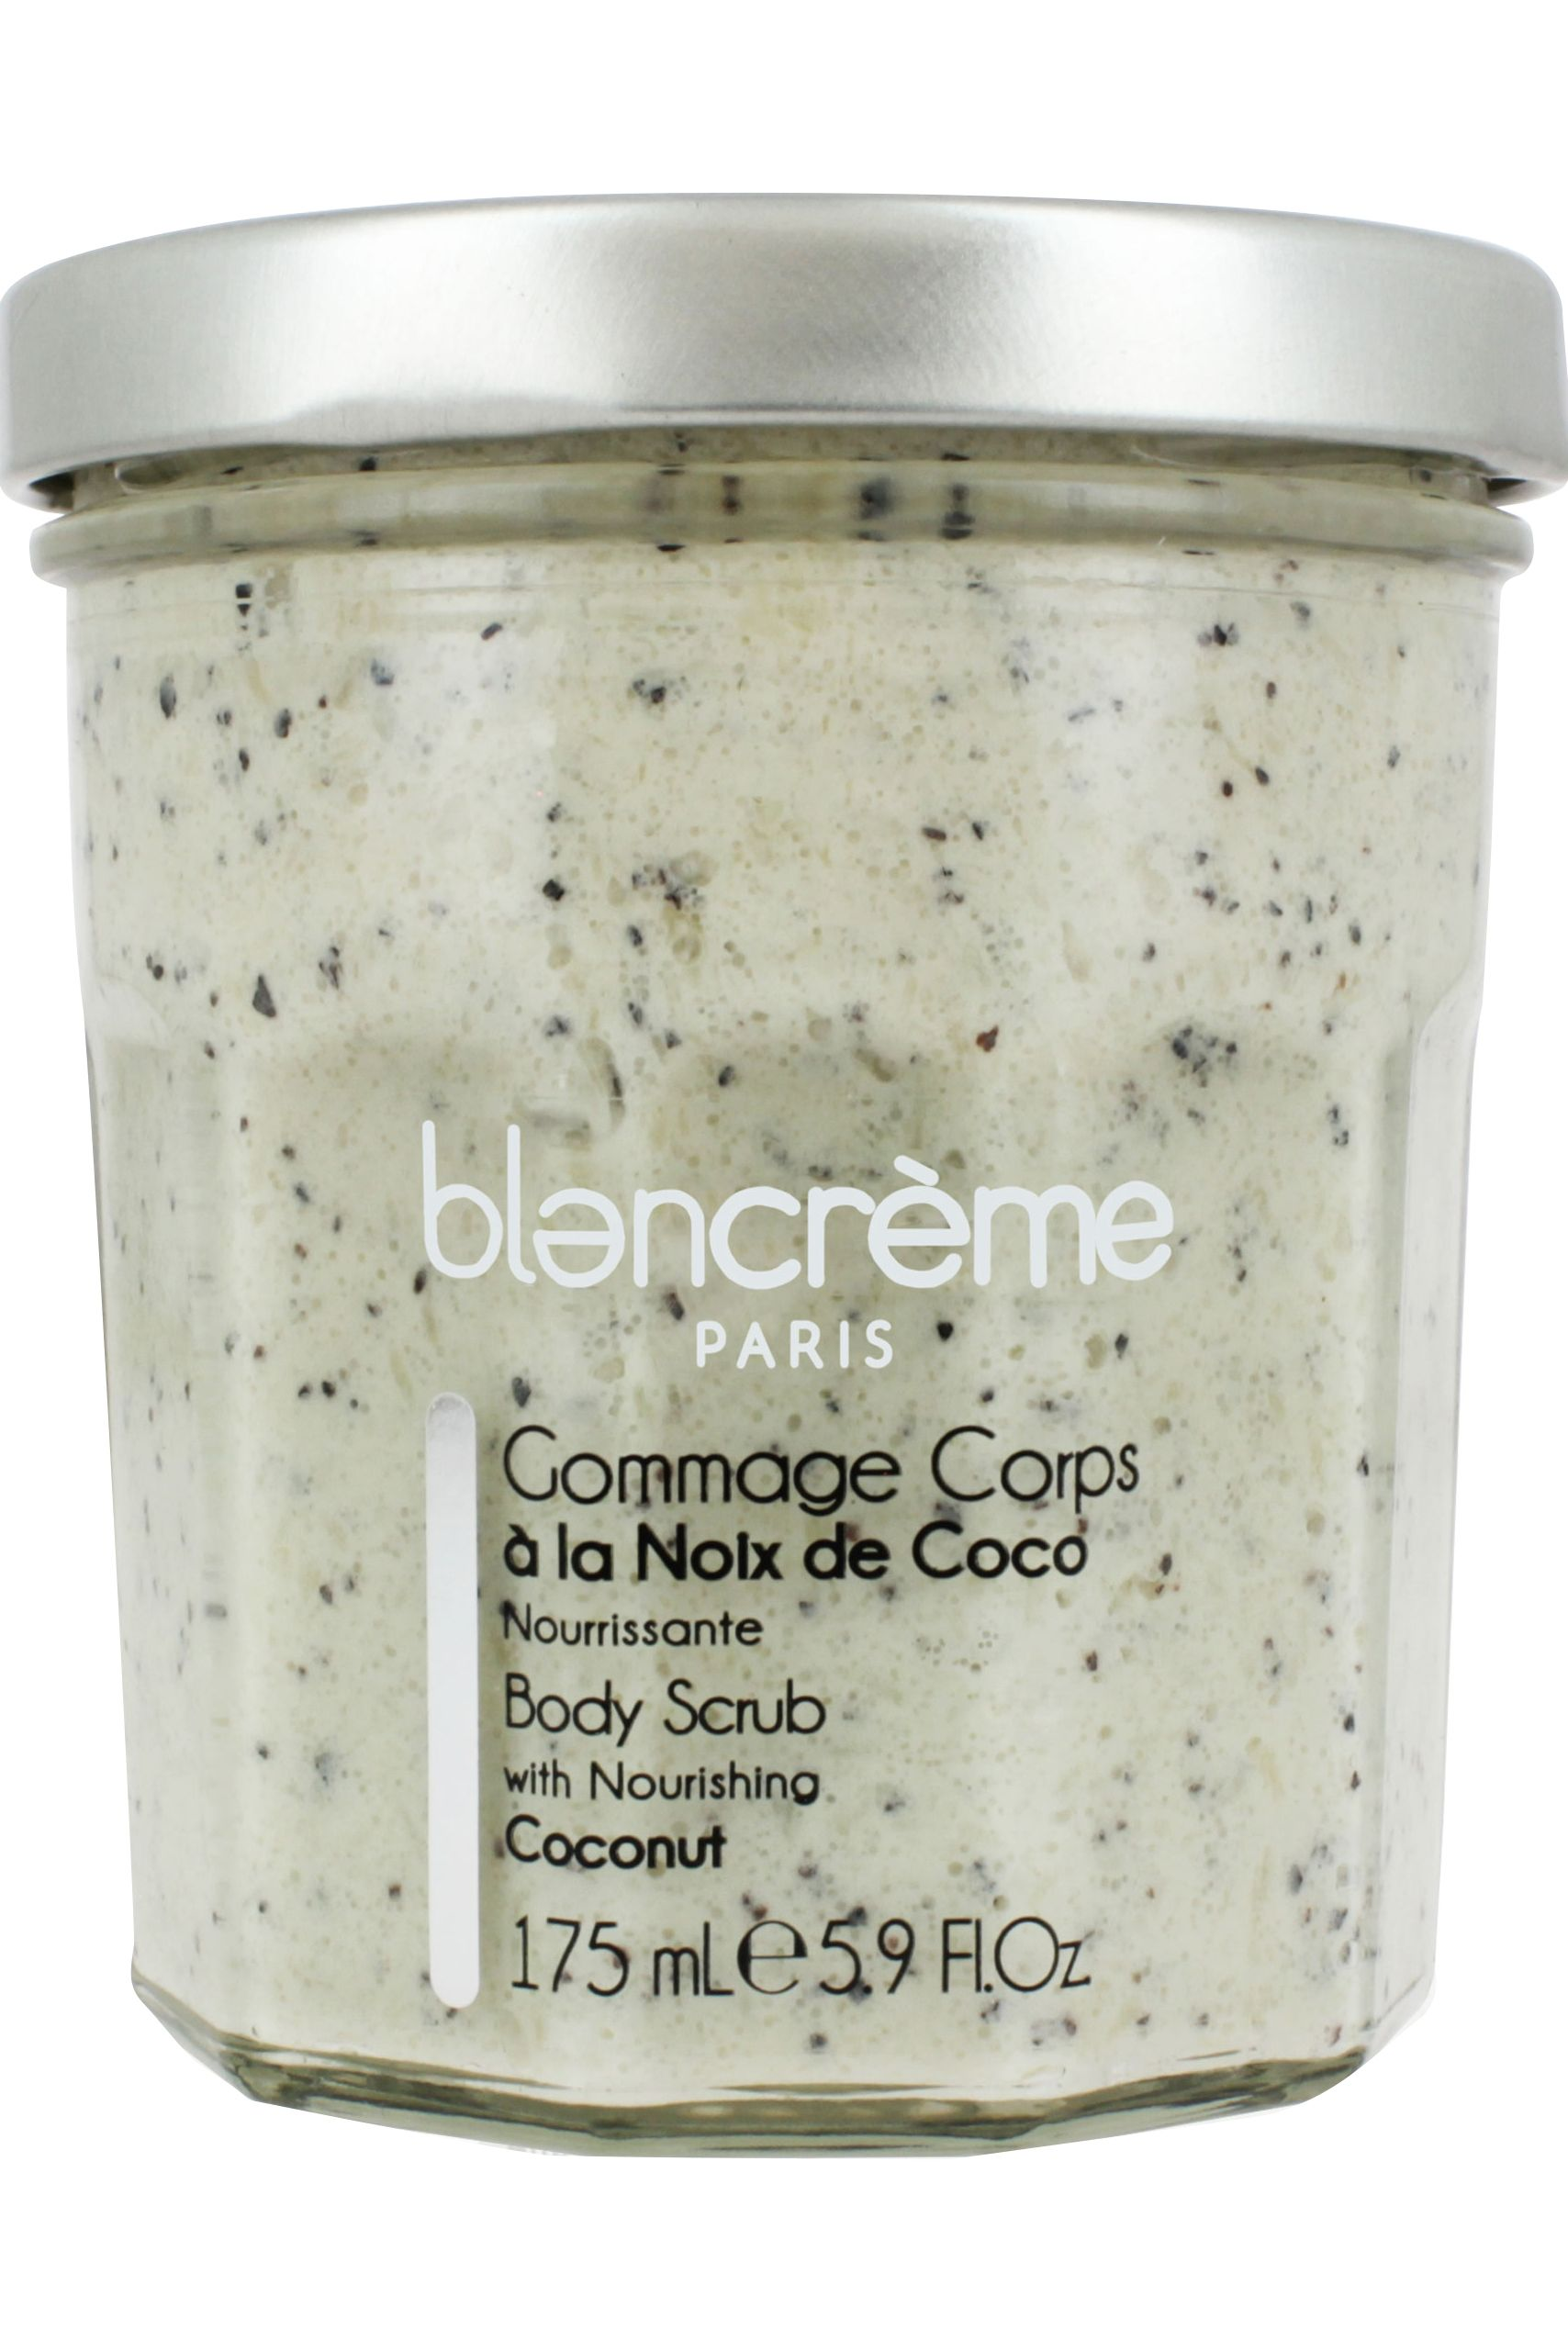 Blissim : Blancrème - Gommage Corps Coco - Gommage Corps Coco